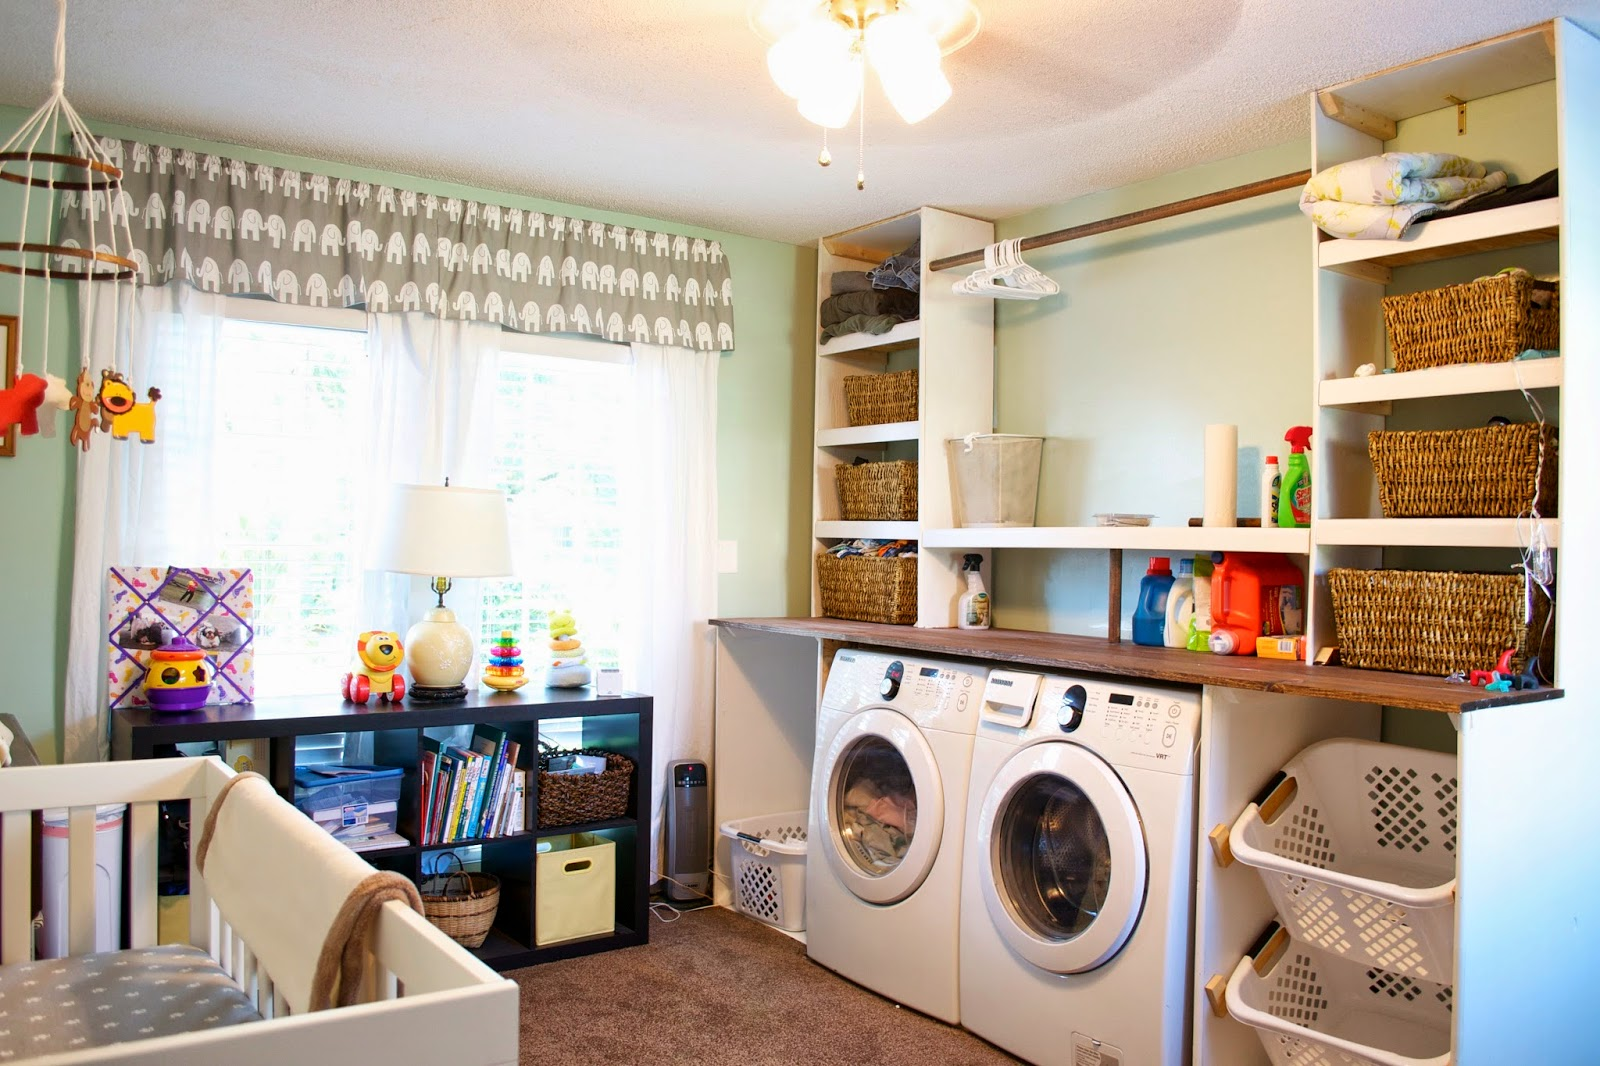 Remodelaholic | Built-in Laundry Unit with Shelving